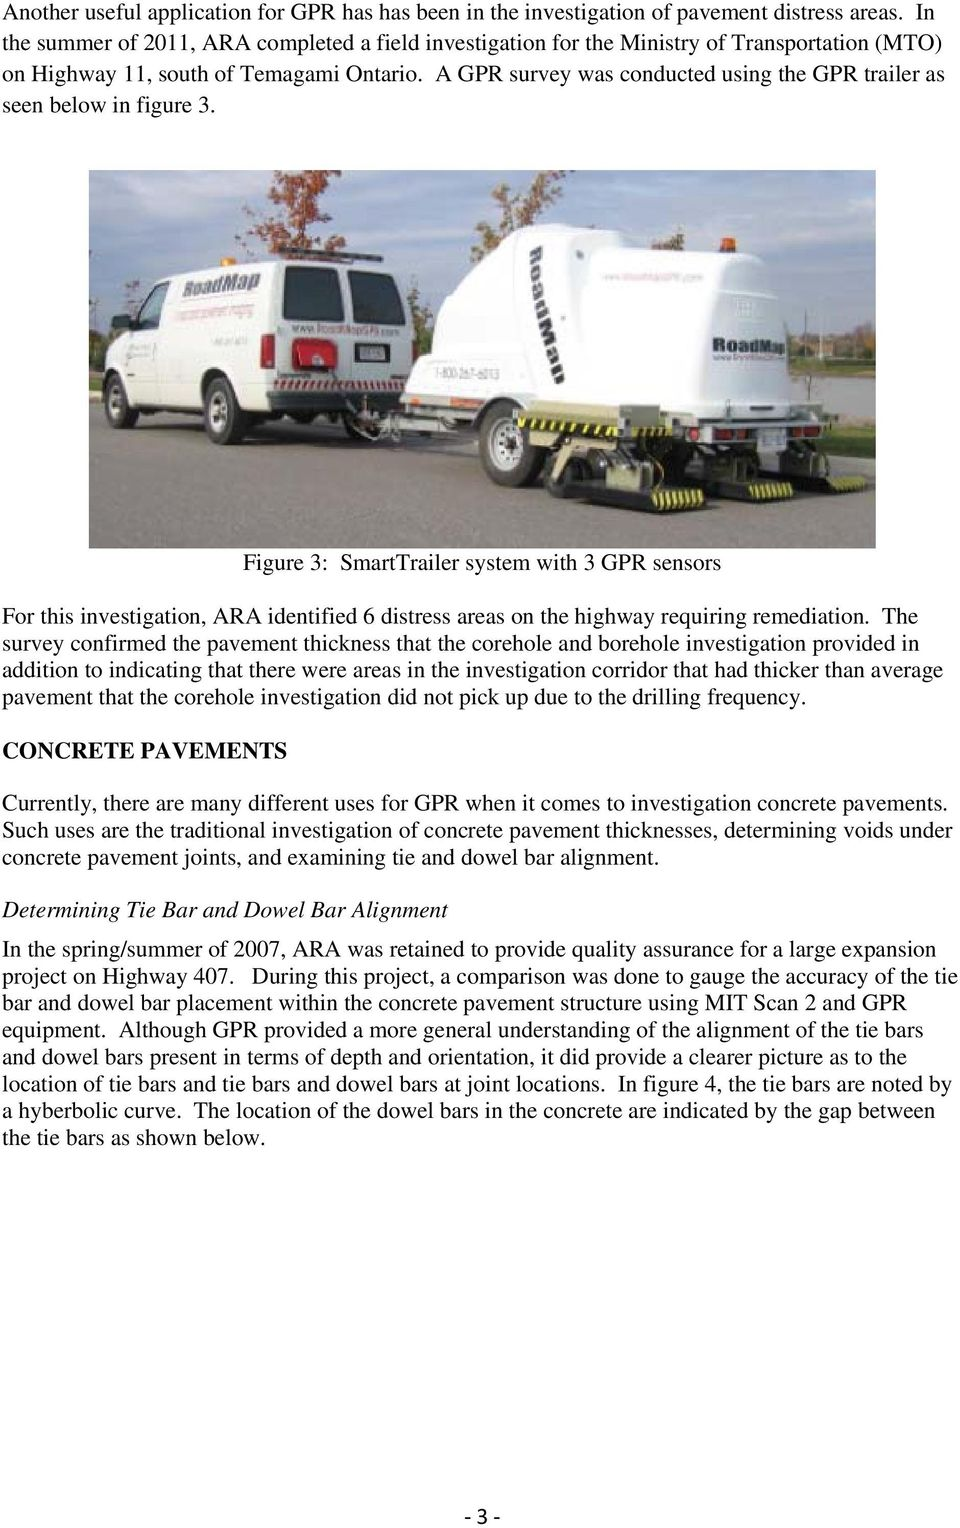 A GPR survey was conducted using the GPR trailer as seen below in figure 3.